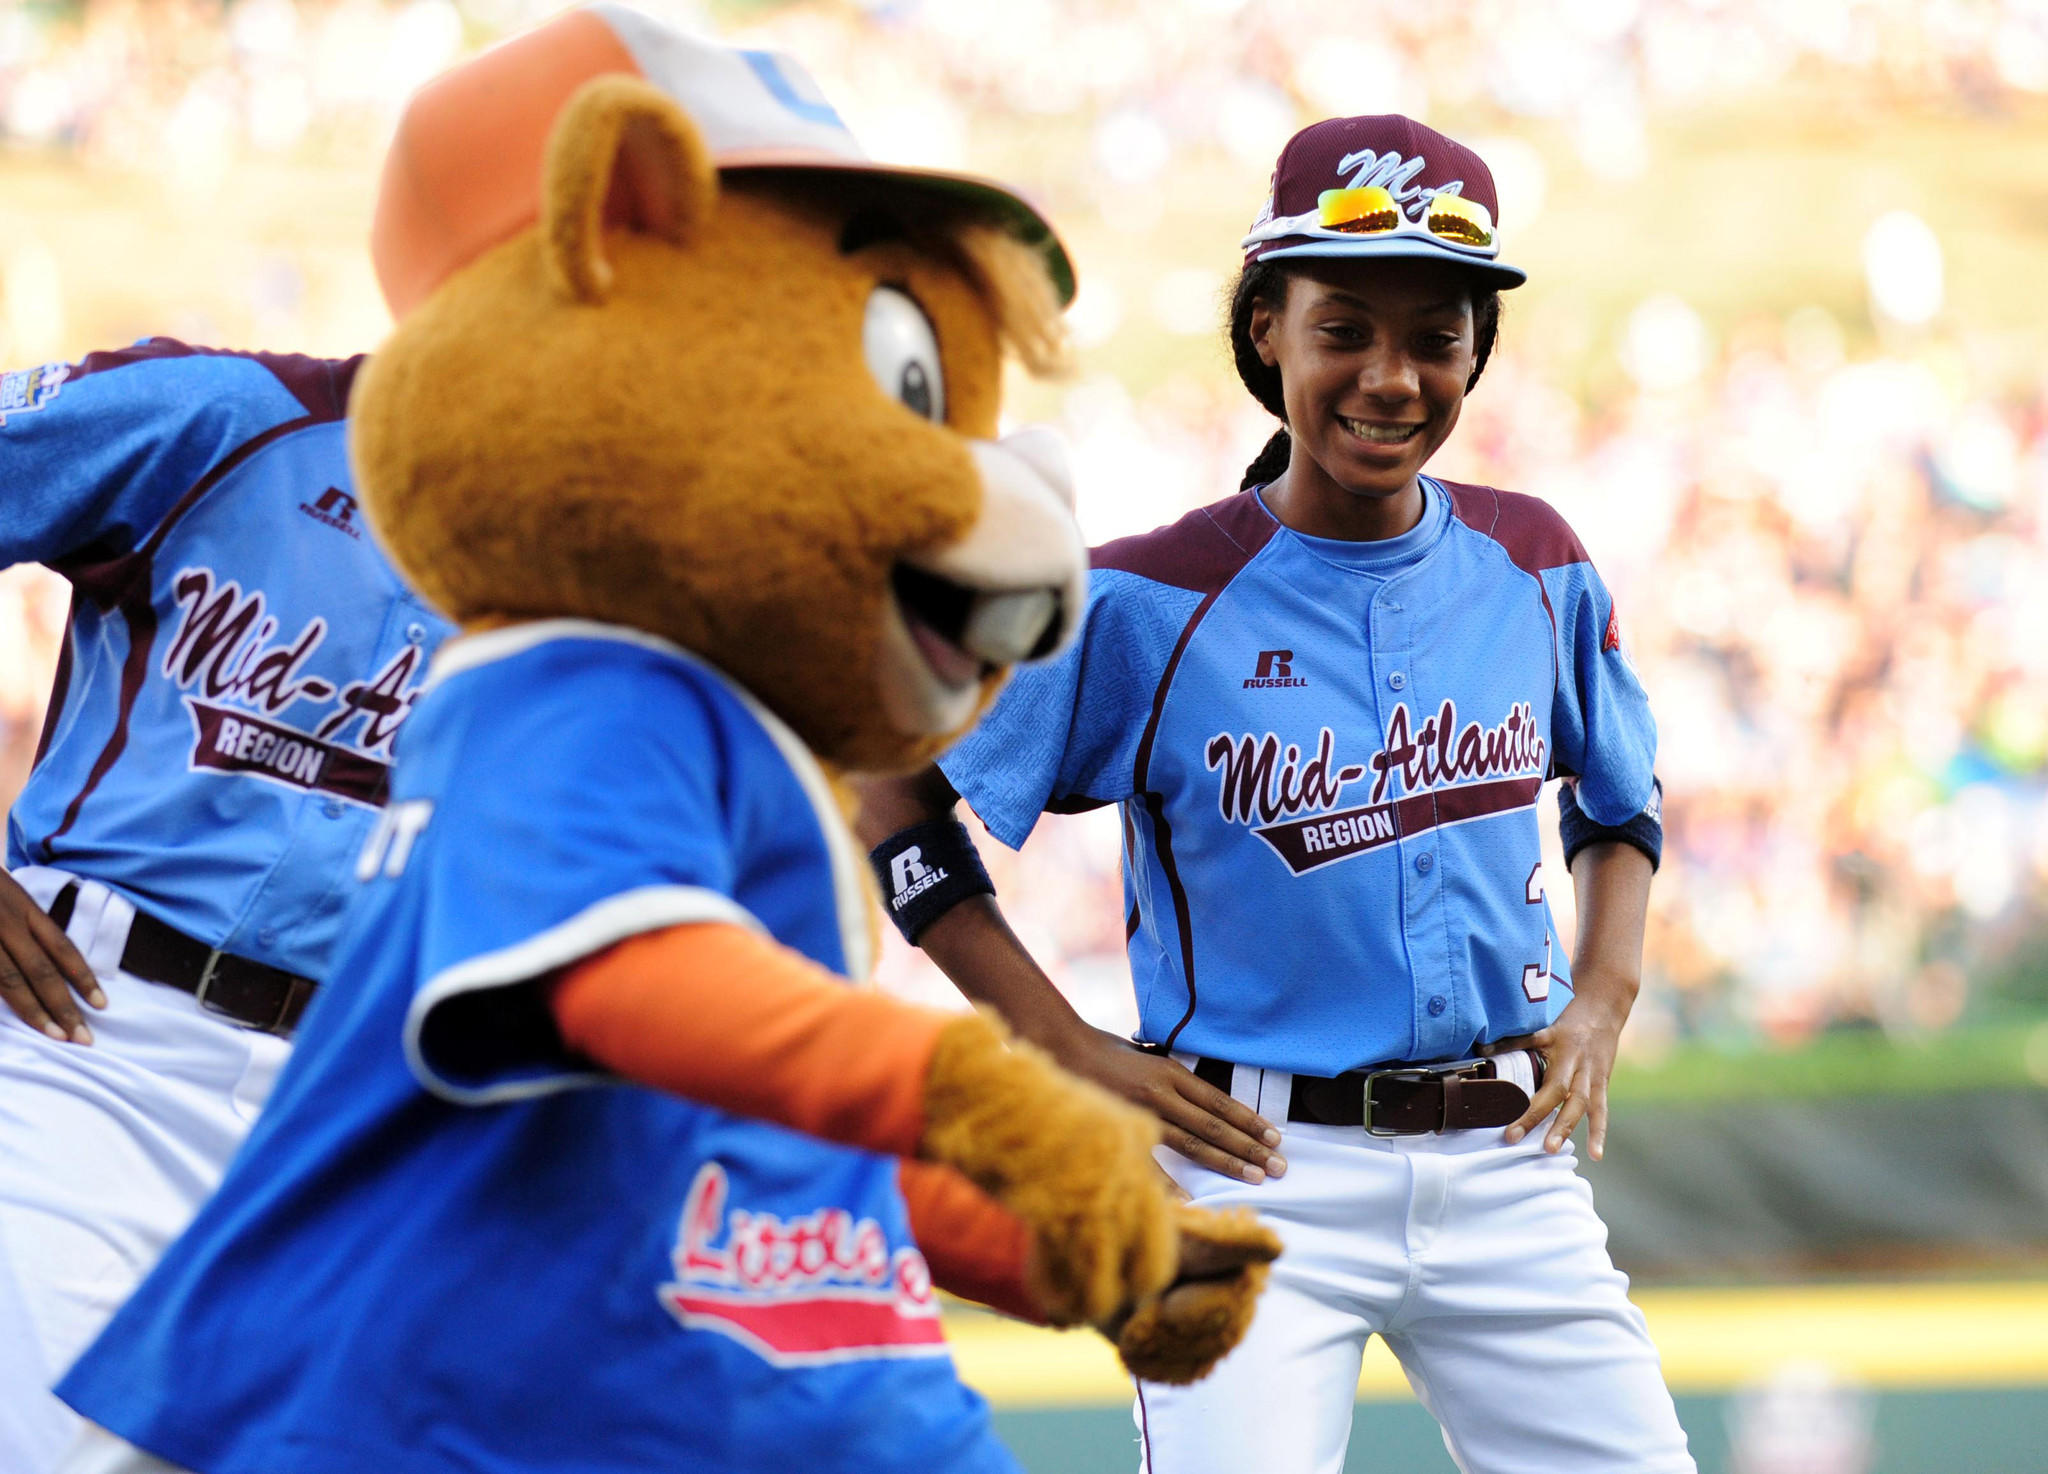 Mid-Atlantic Region third baseman Mo'ne Davis (right) dances with the mascot Dugout prior to the game against the Southwest Region at Lamade Stadium.